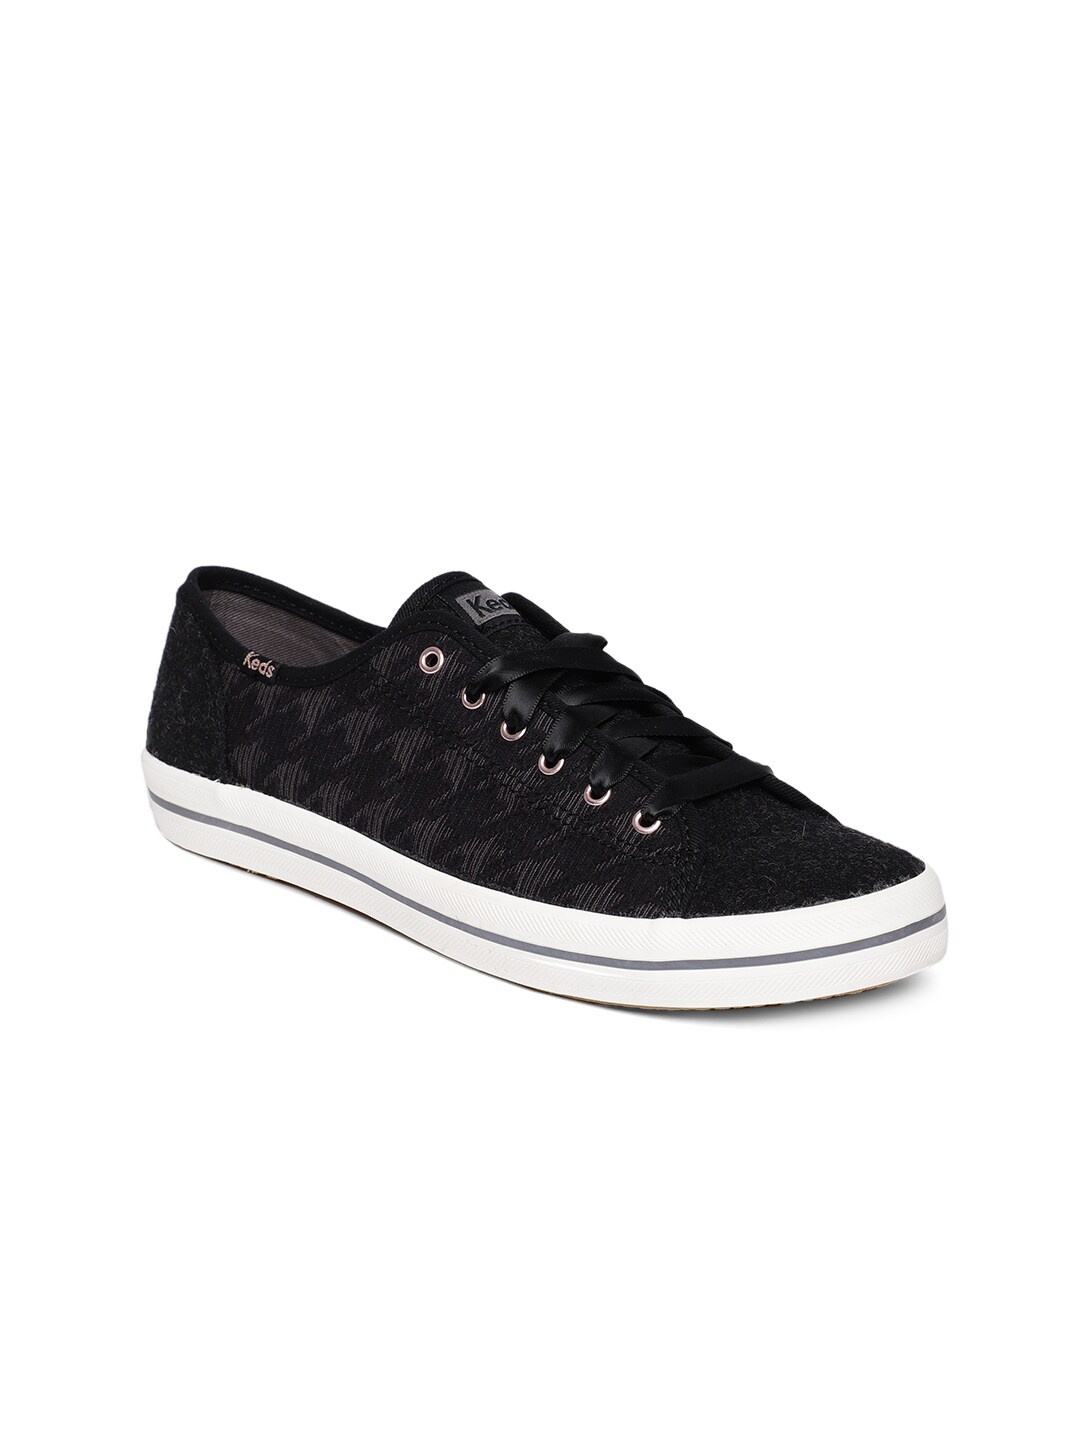 b4c74eb6604 Casual Shoes For Women - Buy Women s Casual Shoes Online from Myntra